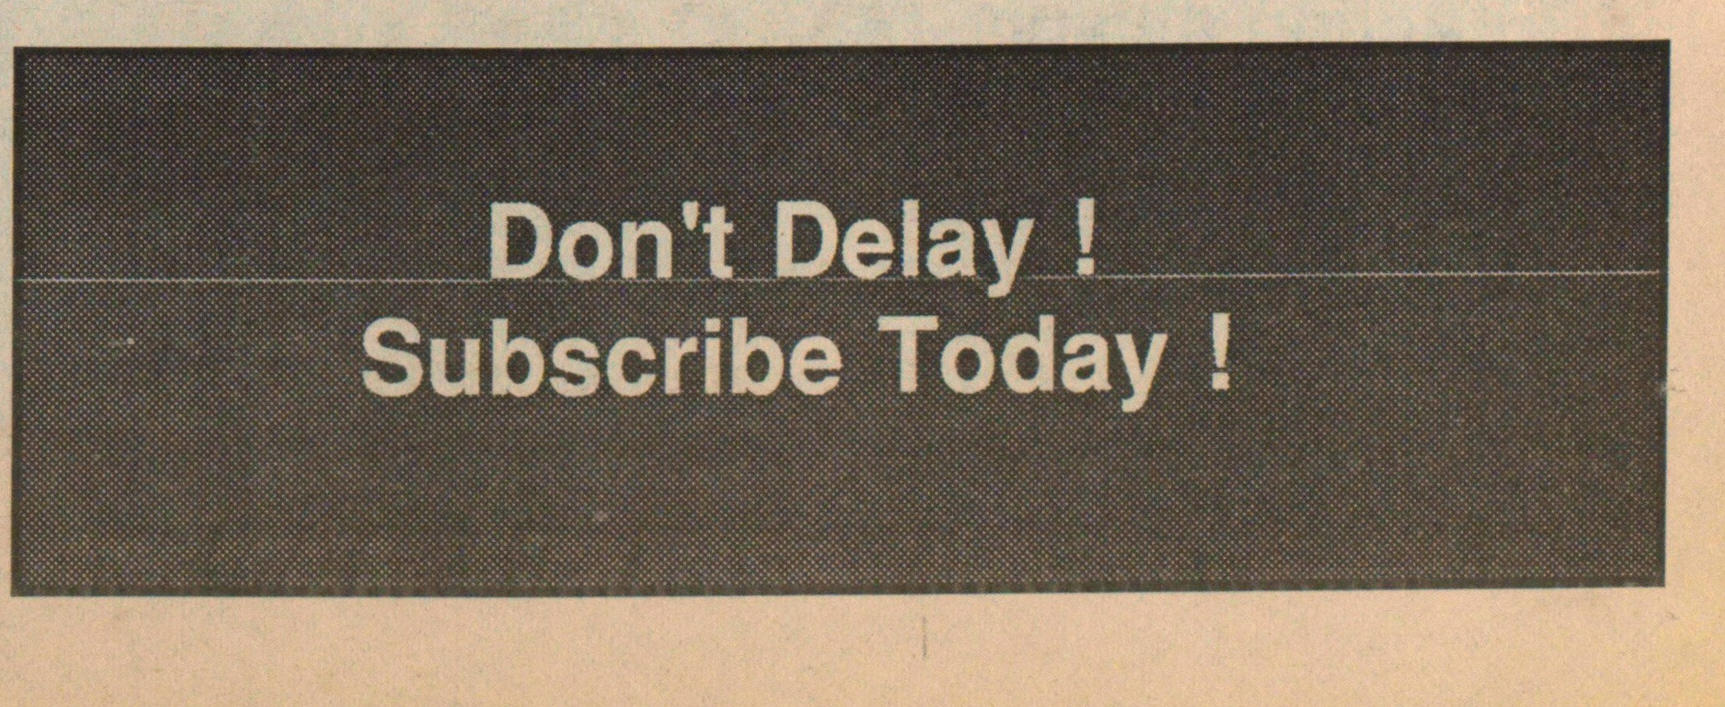 Don't Delay! image